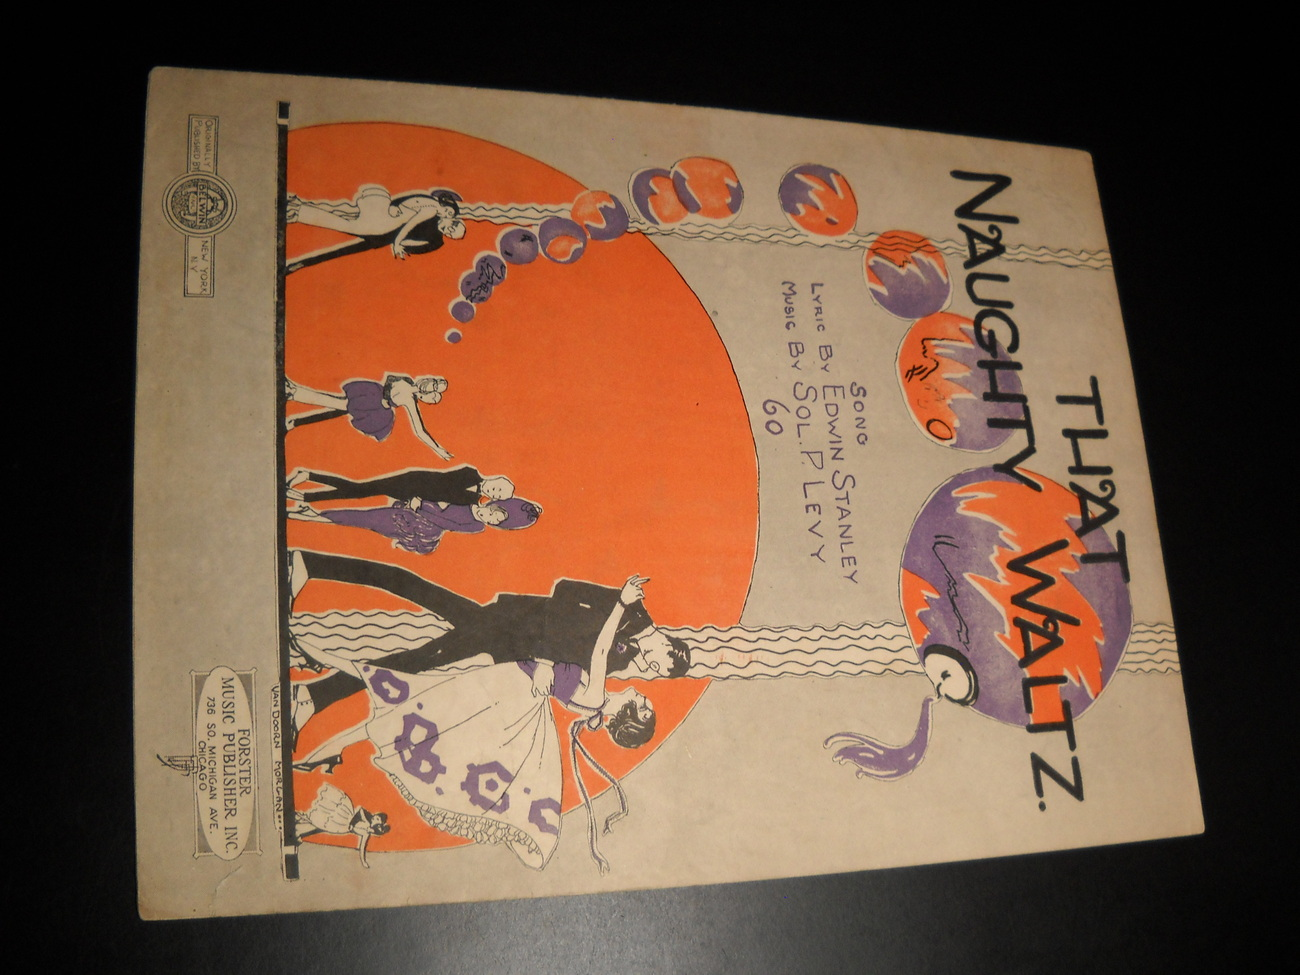 Sheet_music_that_naughty_waltz_stanley_levy_1920_foster_01